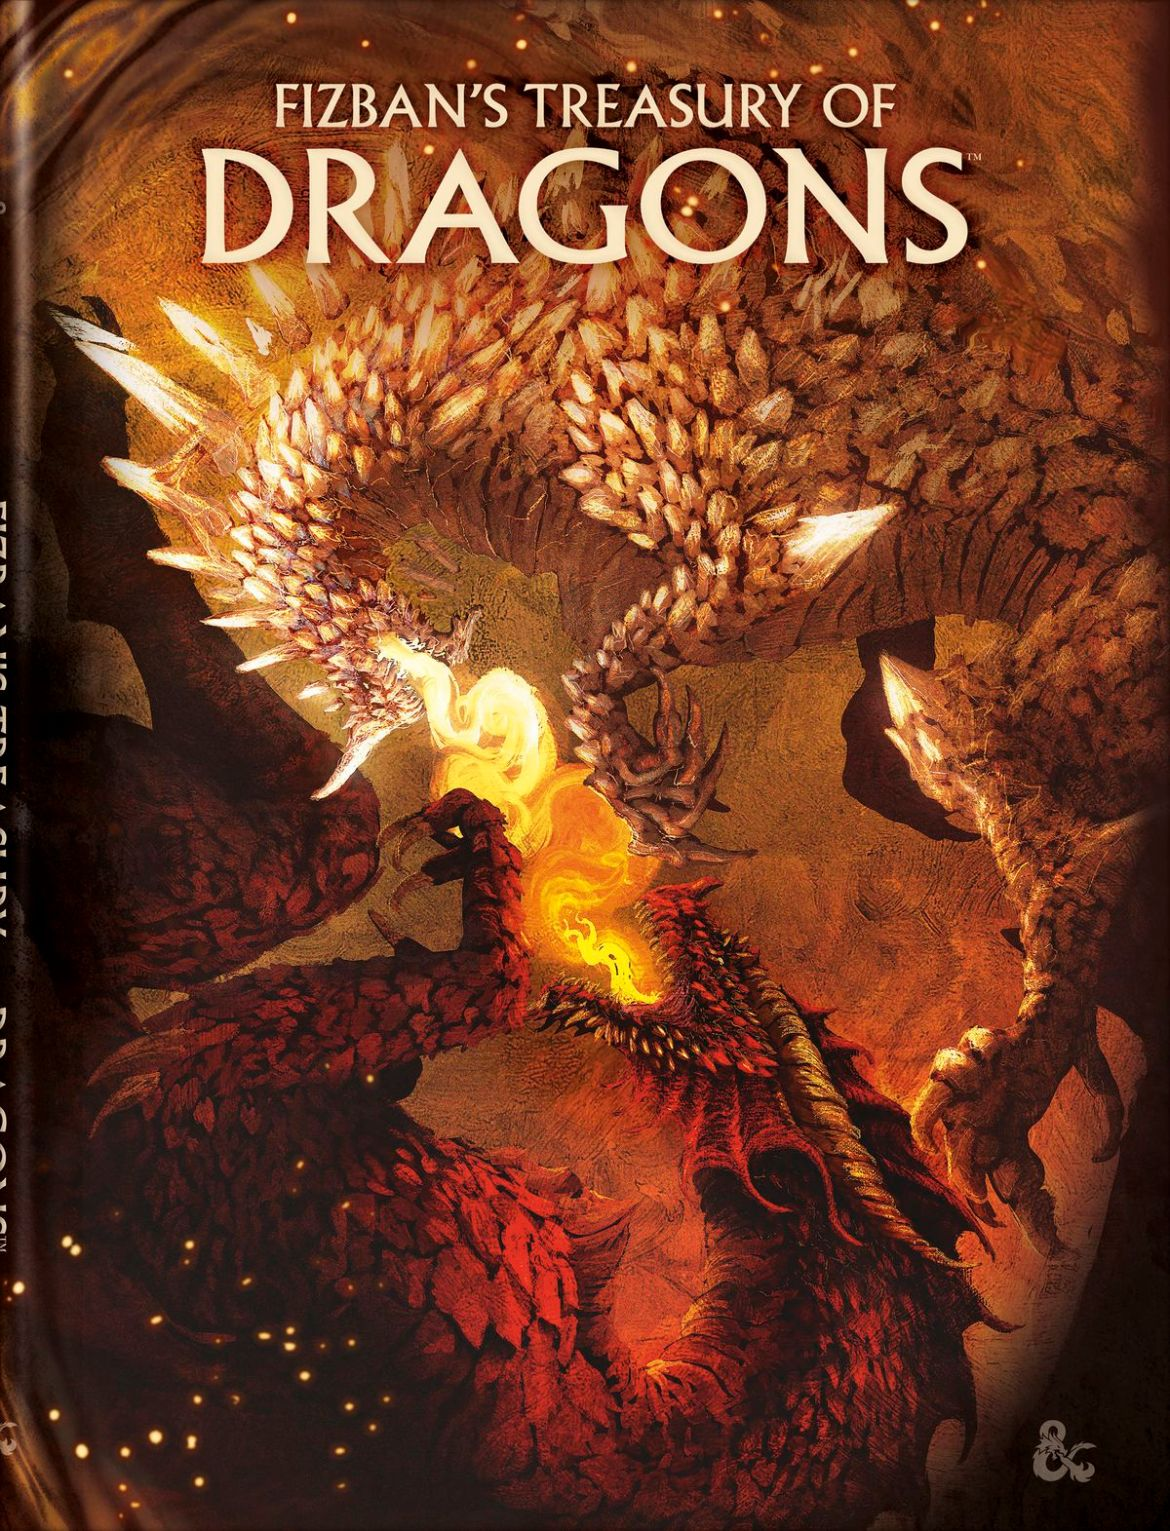 The bookstore-exclusive alternate cover of the D&D sourcebook Fizban's Treasury of Dragons